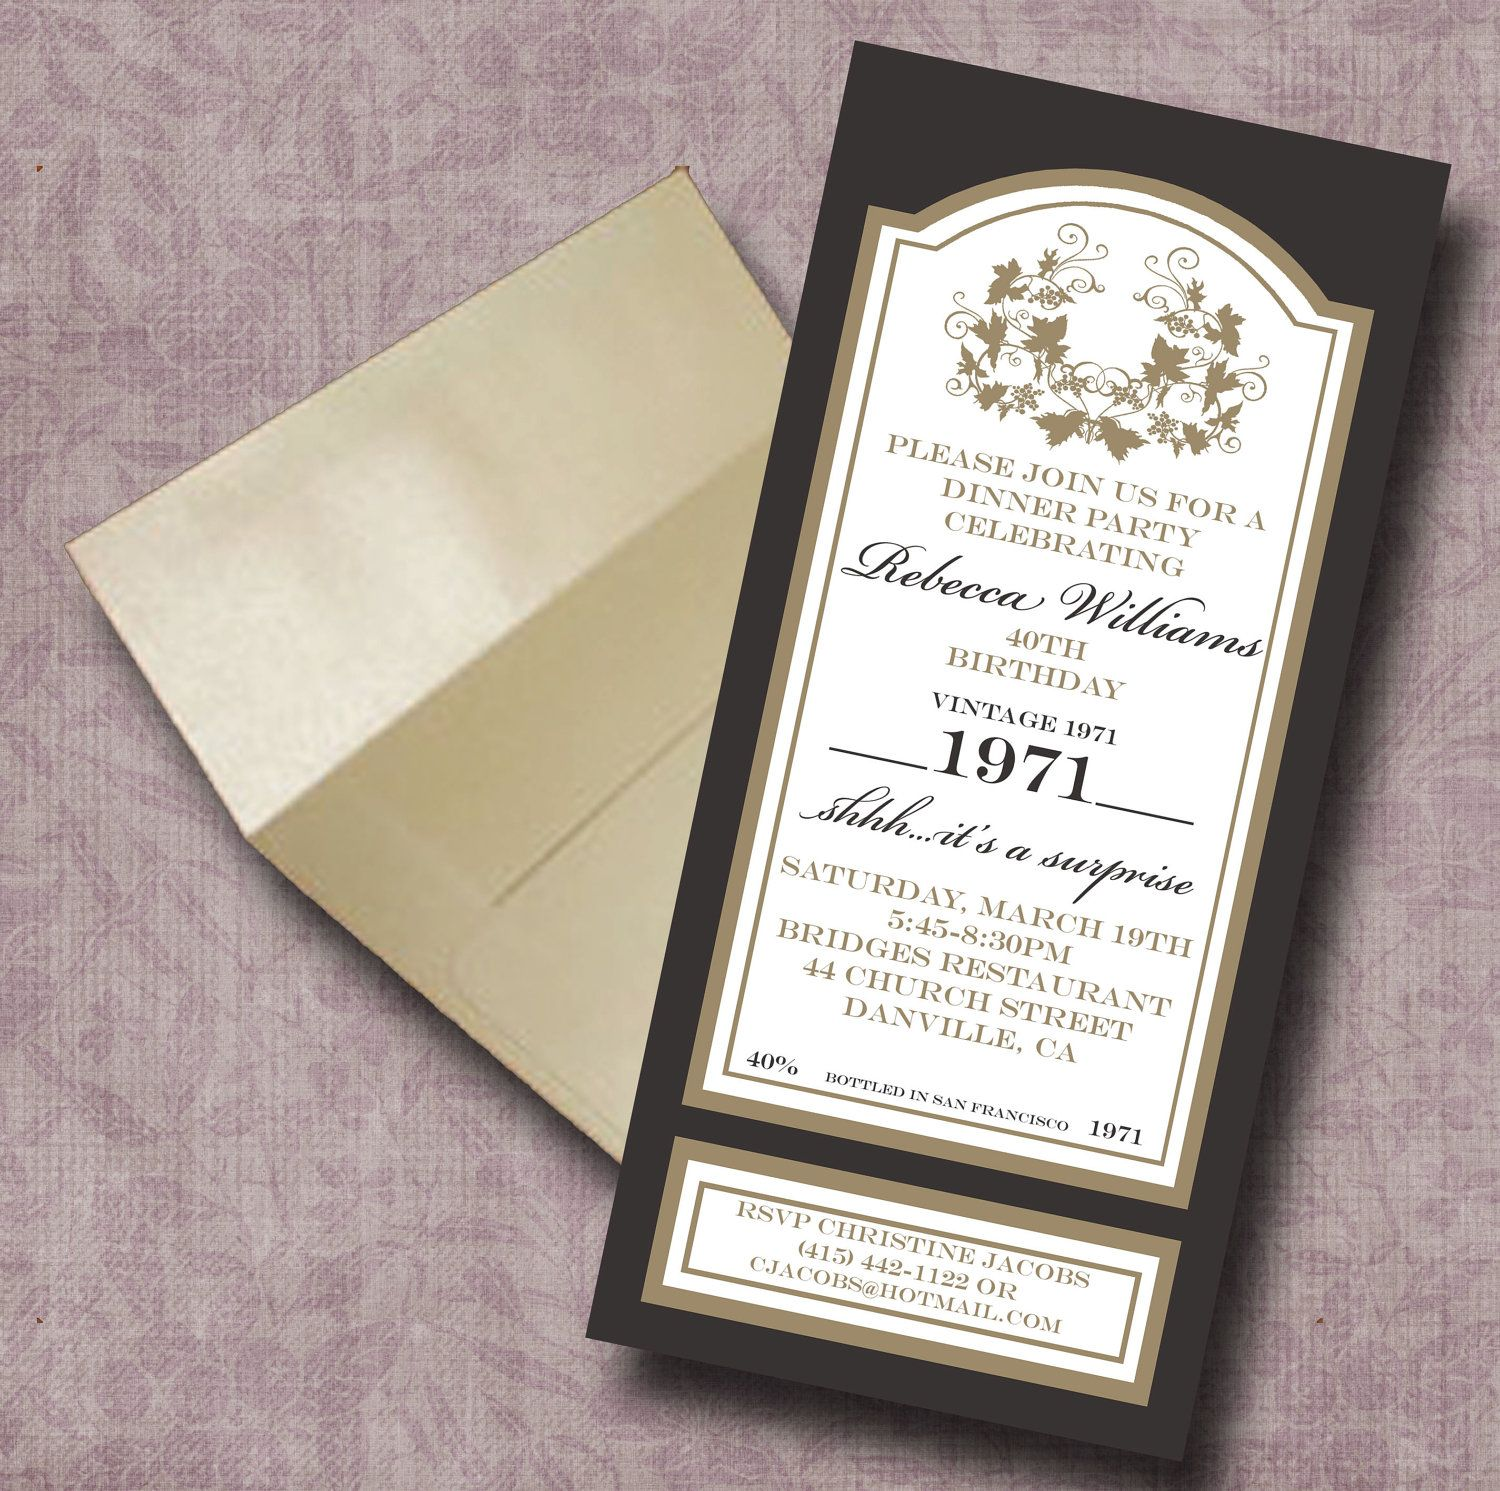 invitations to wedding%0A Wine bottle label invitation  My inspiration